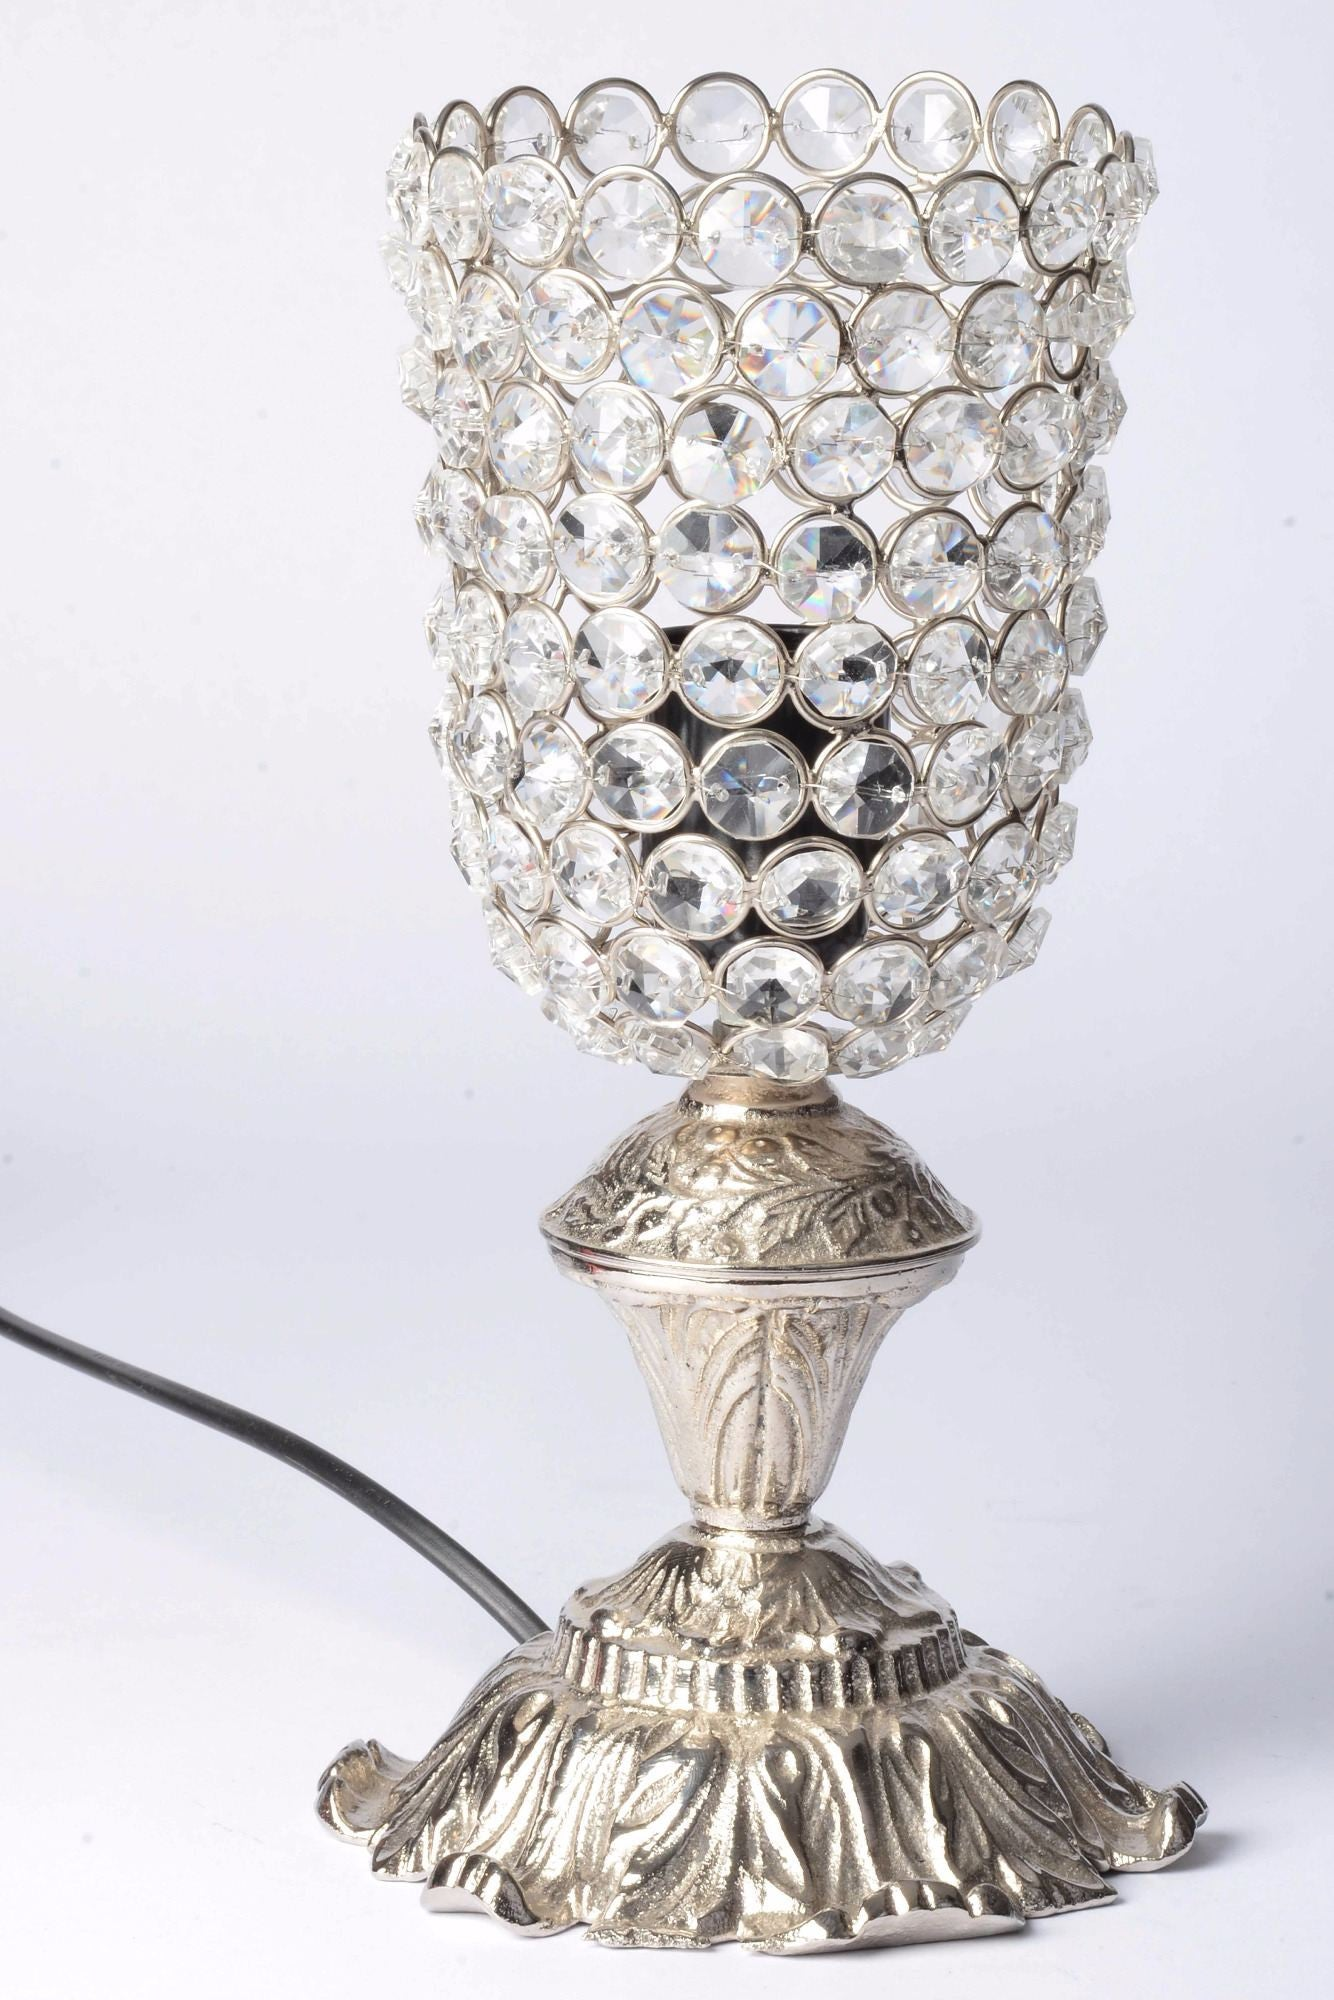 Arelin - Glass Crystal Beads Table Lamp - Wine Glass - Simply Roka